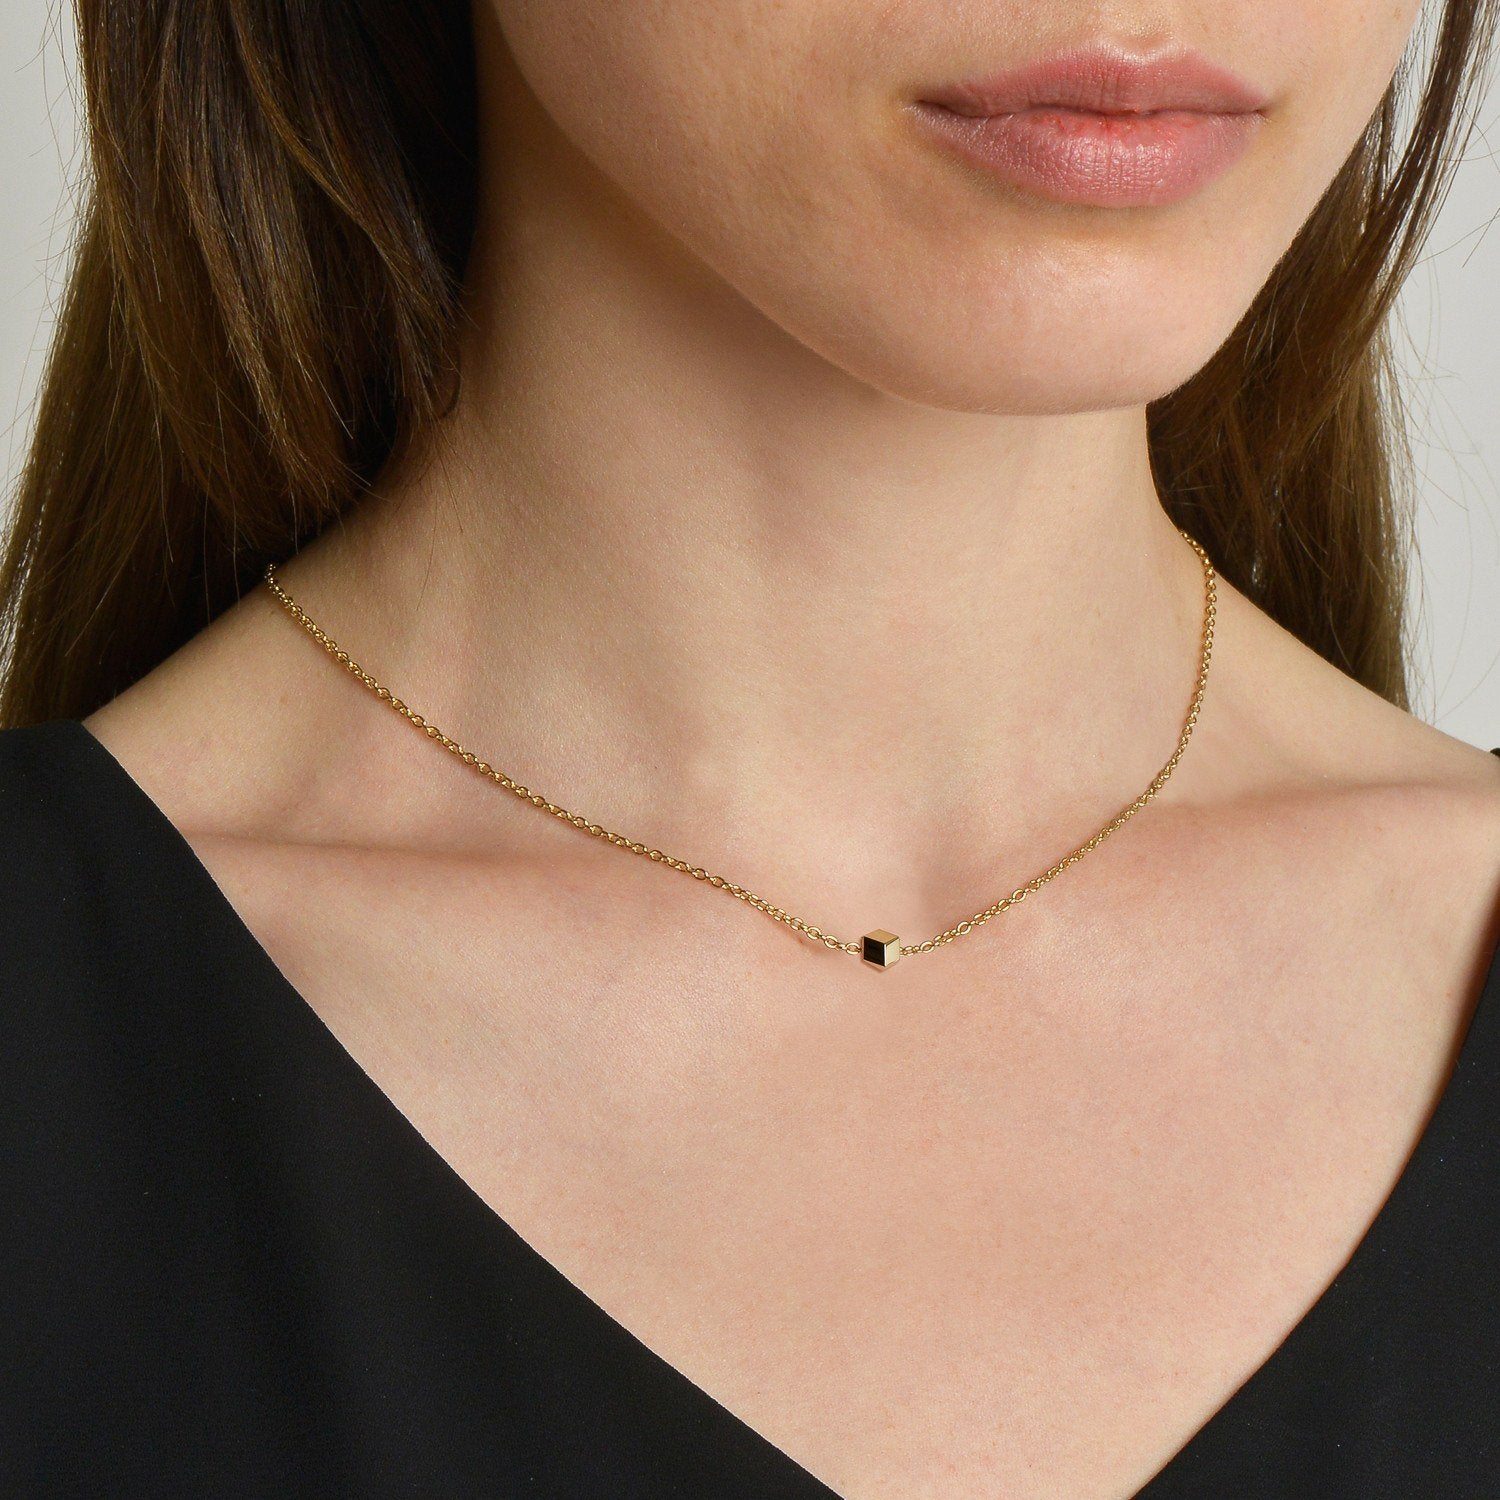 18kt Yellow Gold Necklace - Paolo Costagli - 2